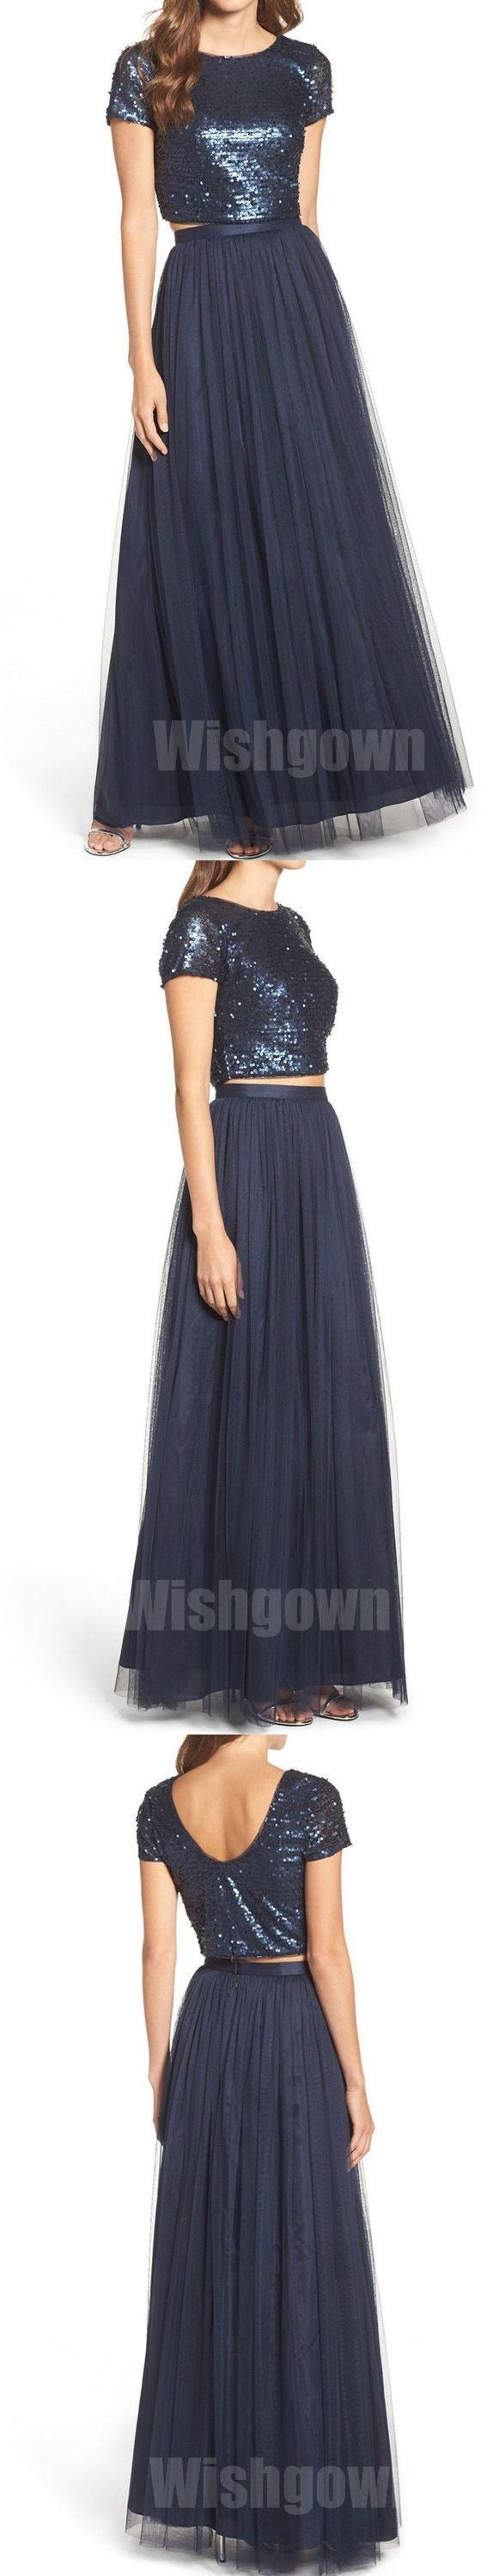 2 Pices Short Sleeves Navy Blue Sequin Top Tulle Long Bridesmaid Dresses, WG458 #bridesmaids #weddingpartydress